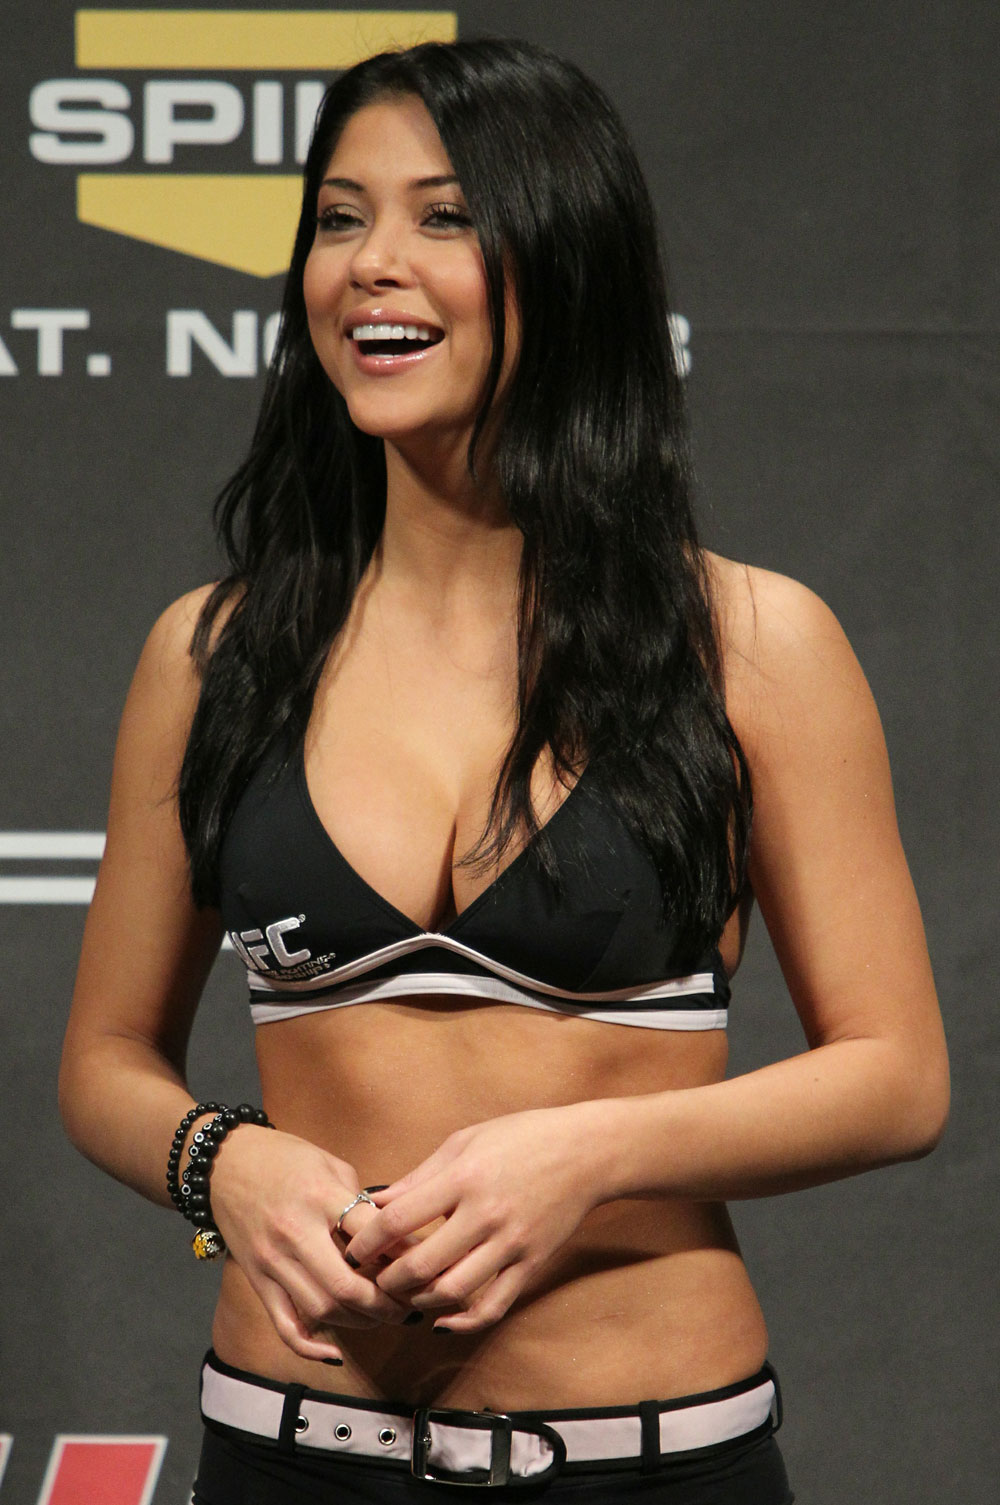 Ufc octagon girl arianny celeste really